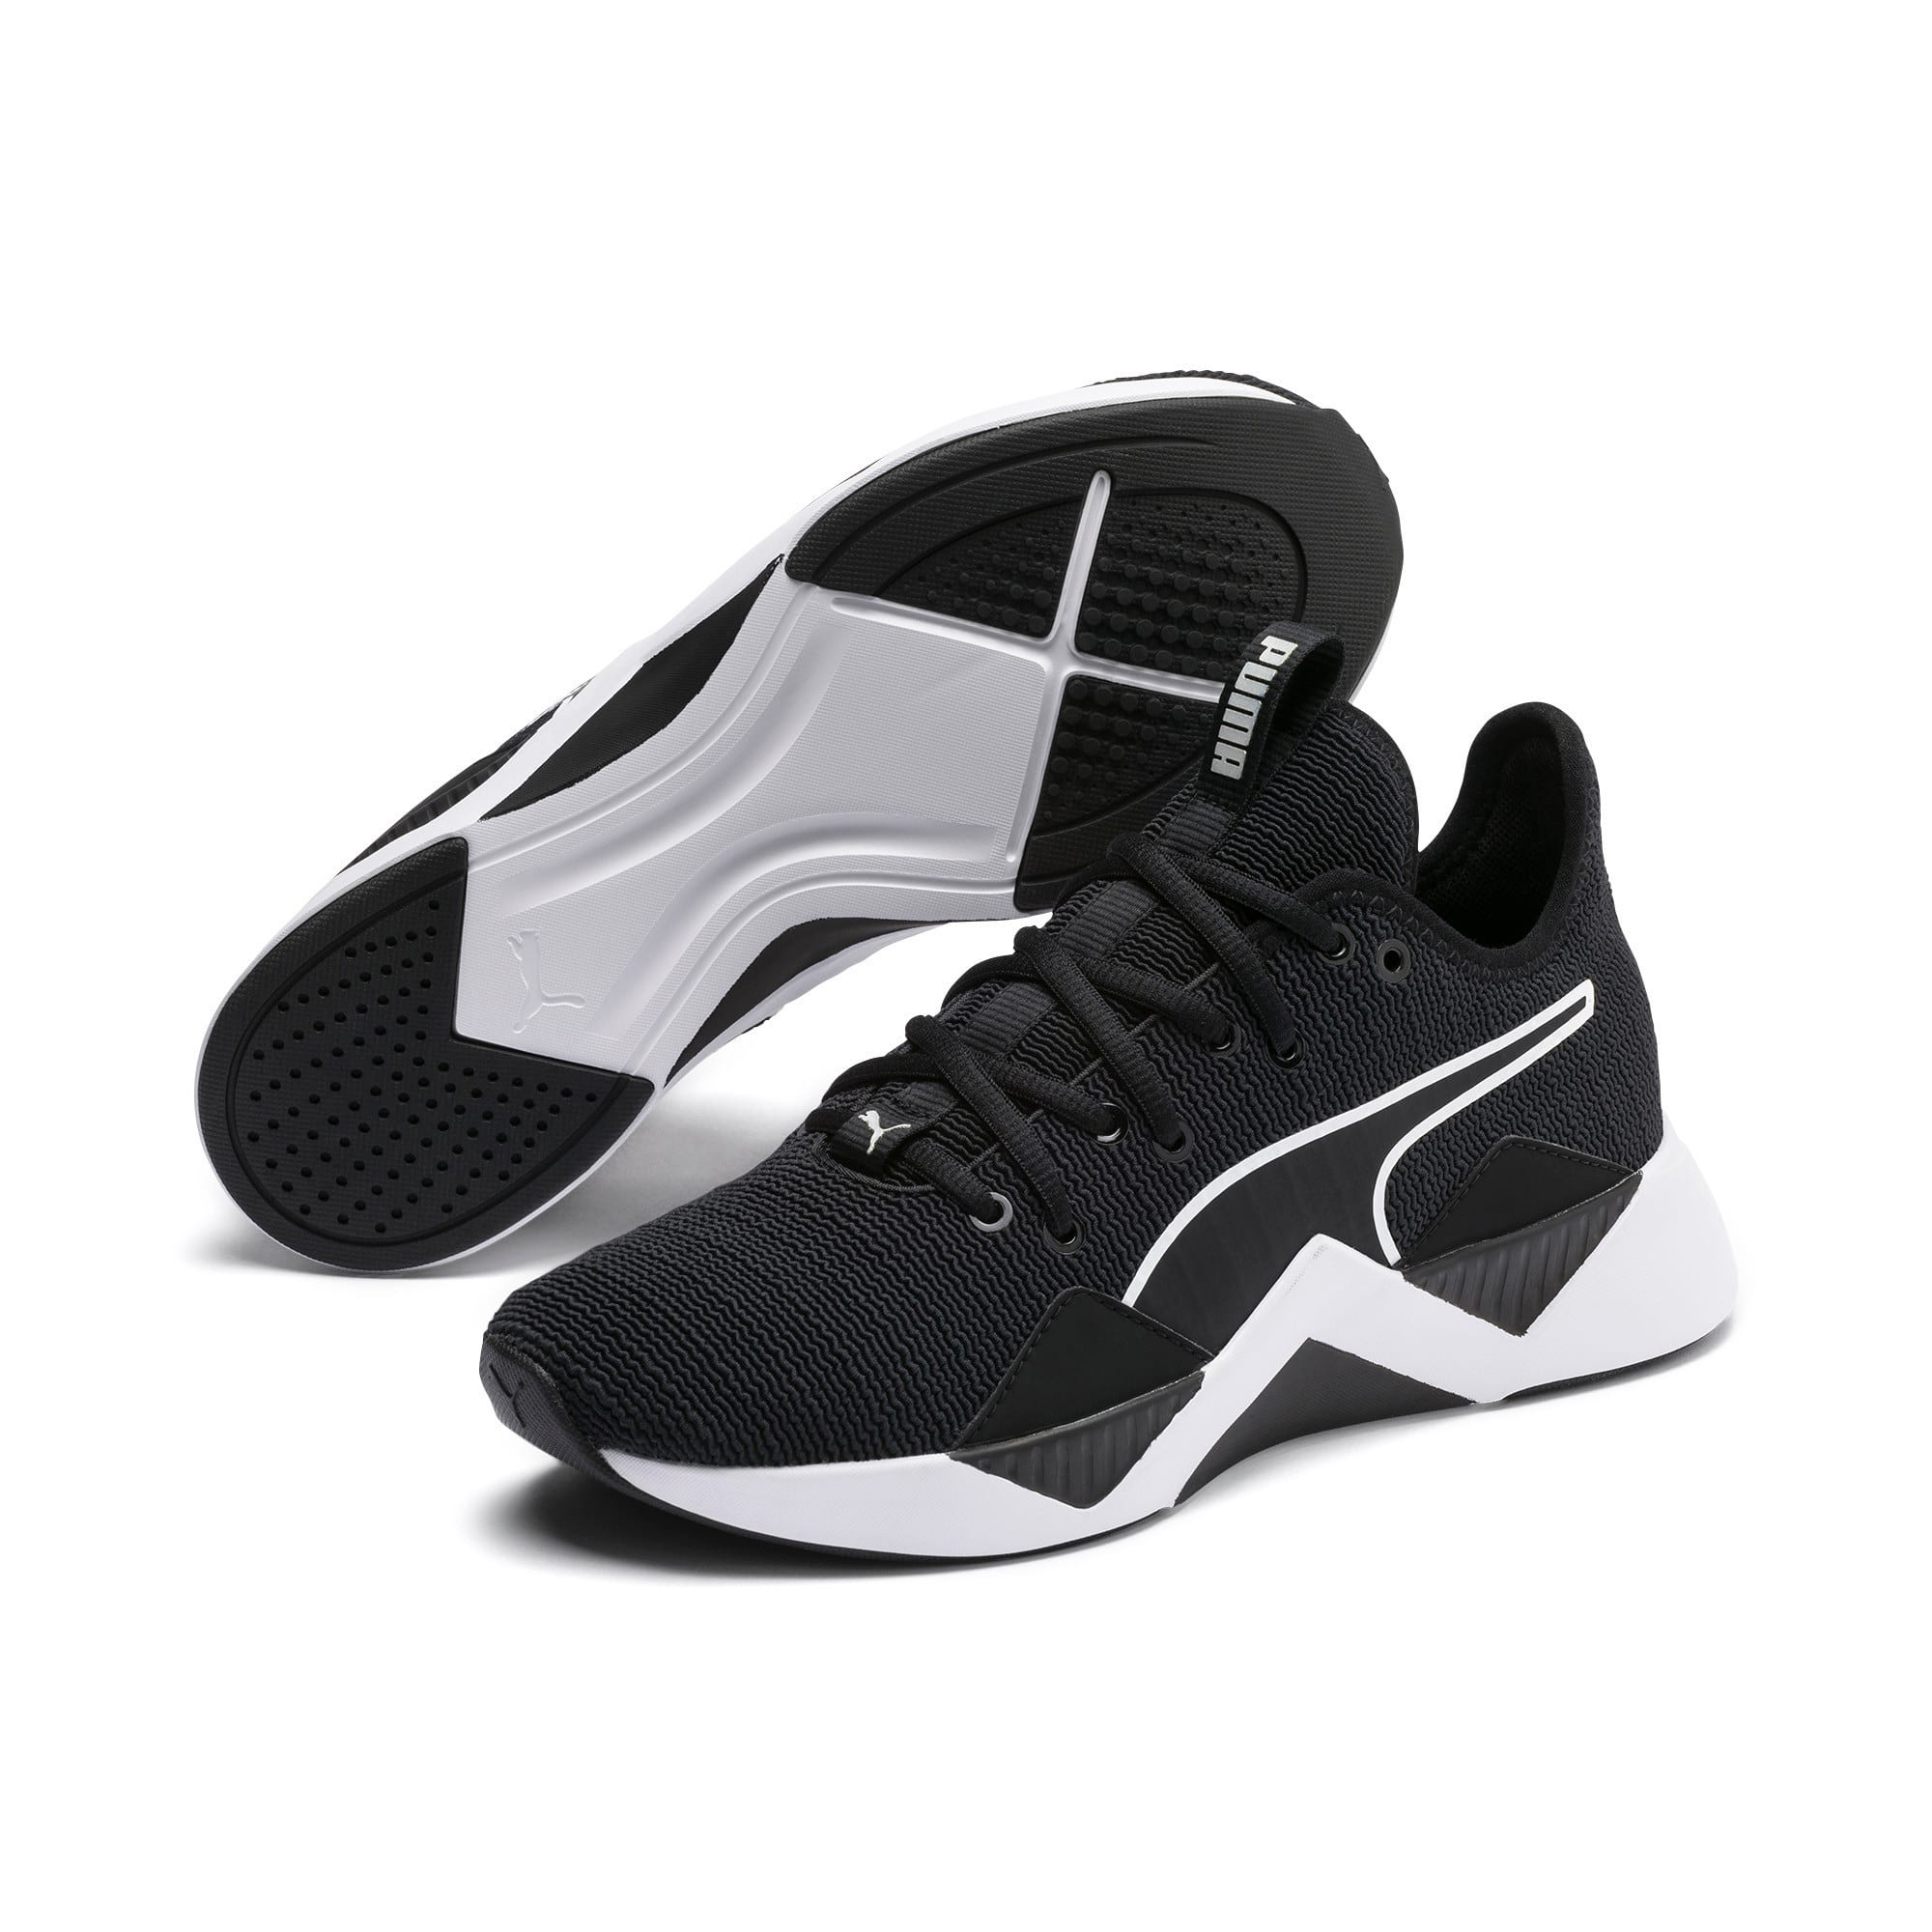 Thumbnail 2 of The Black Incite FS Wave Wn's, Puma Black-Puma White, medium-IND